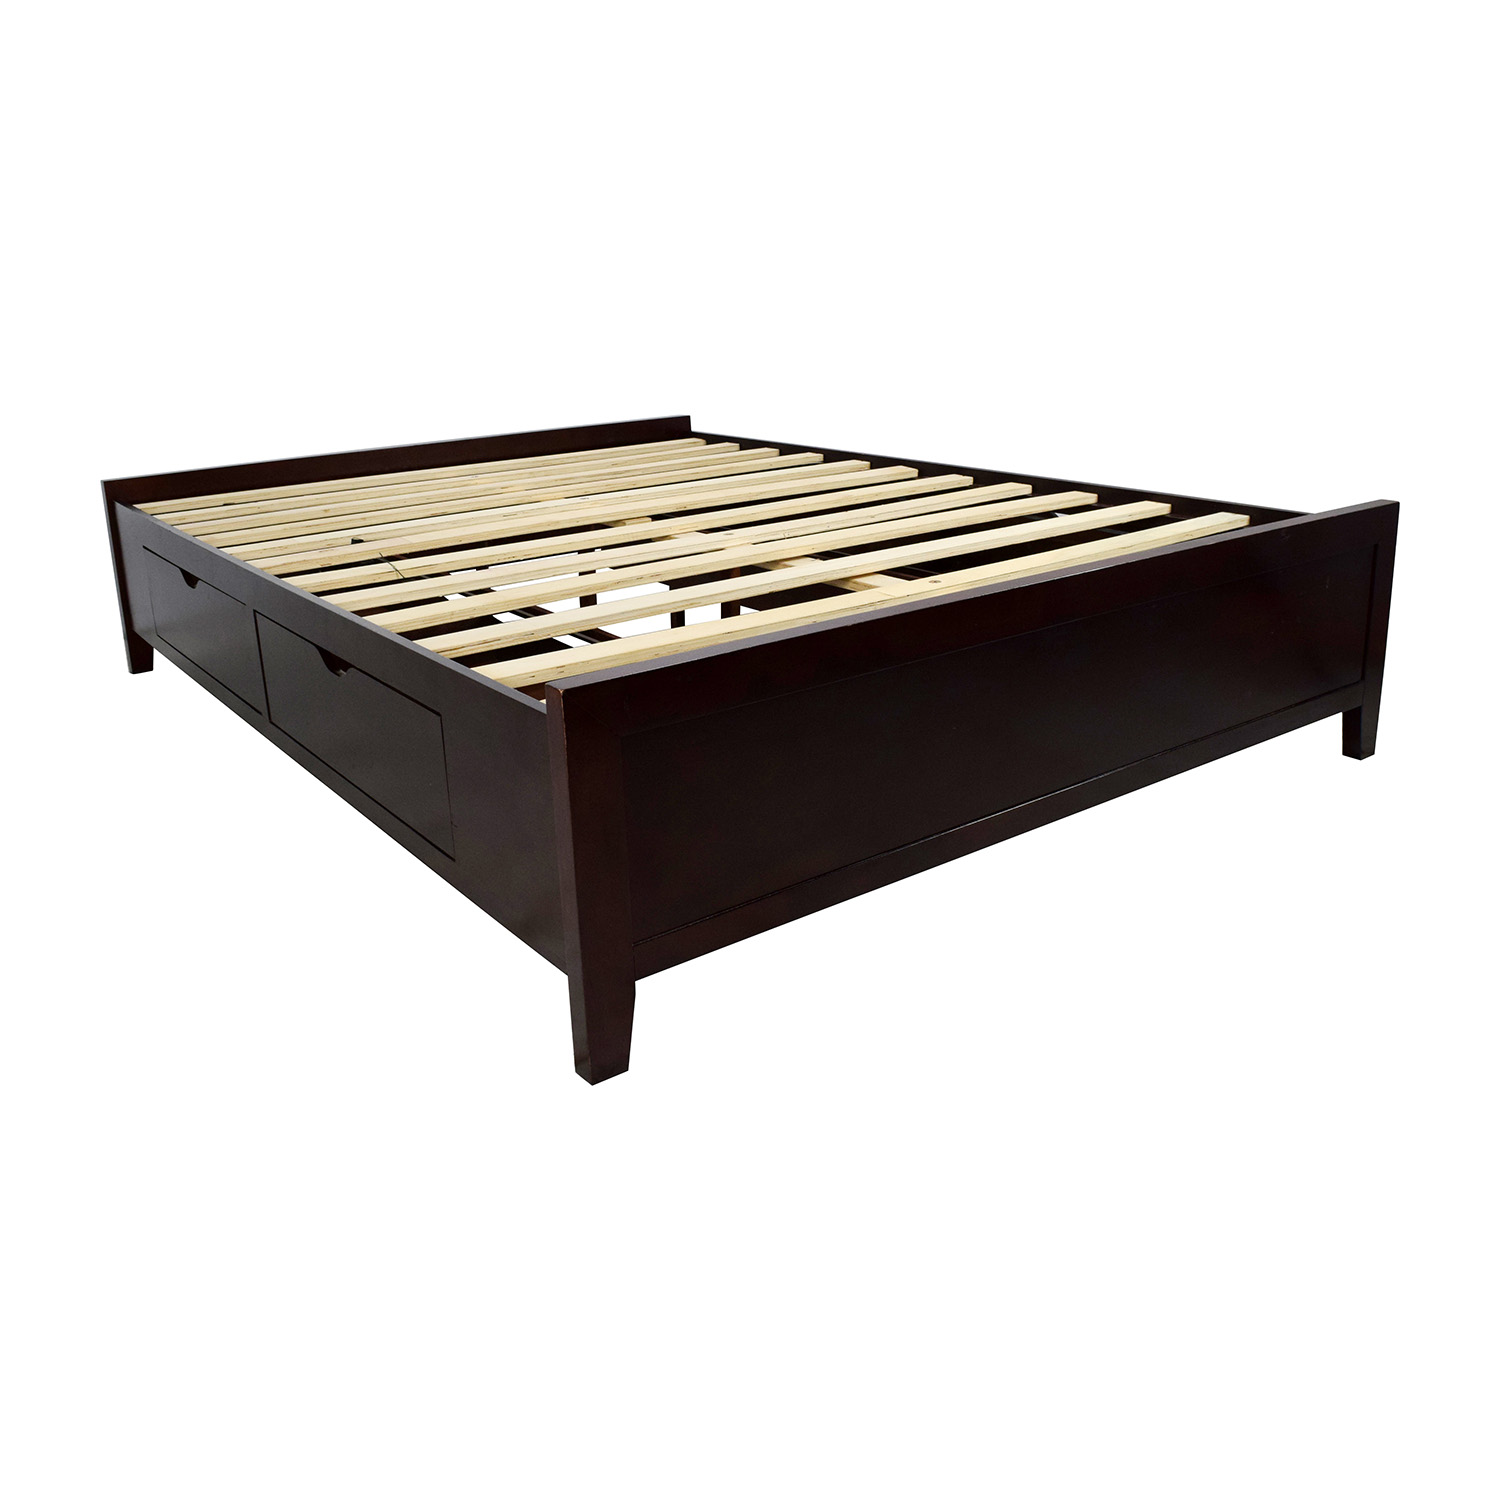 Storage Bed Frame Queen 67 Off Wooden Queen Size Storage Bed Frame Beds